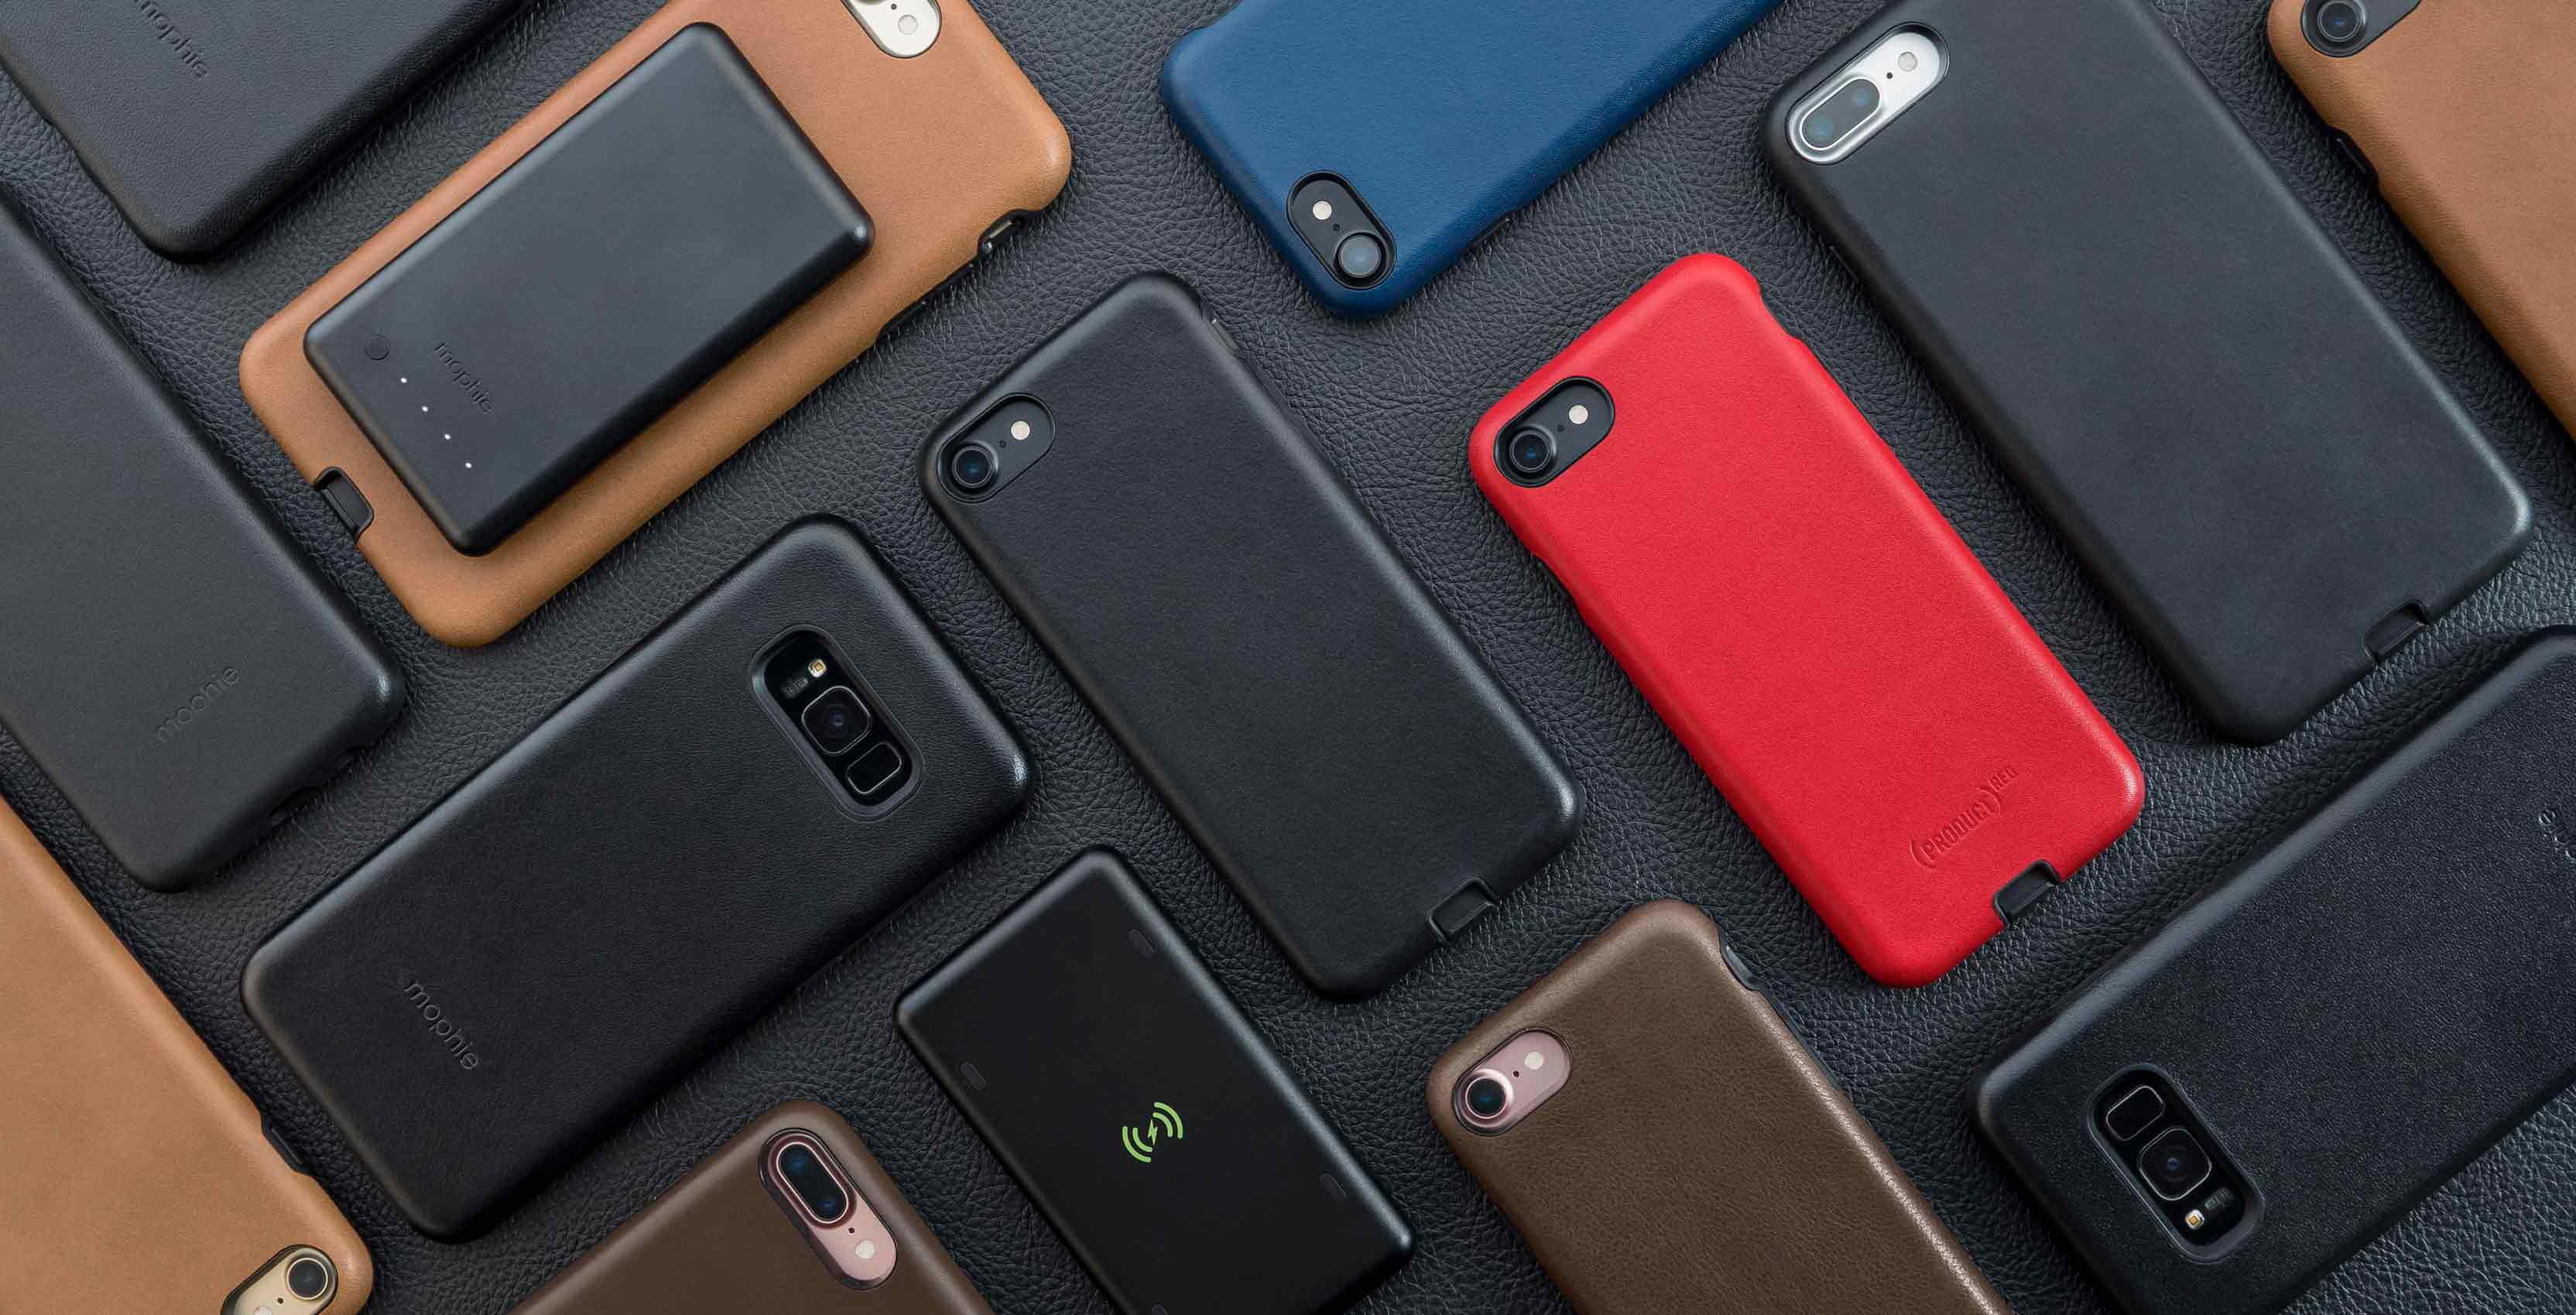 Mophie cases multi-coloured